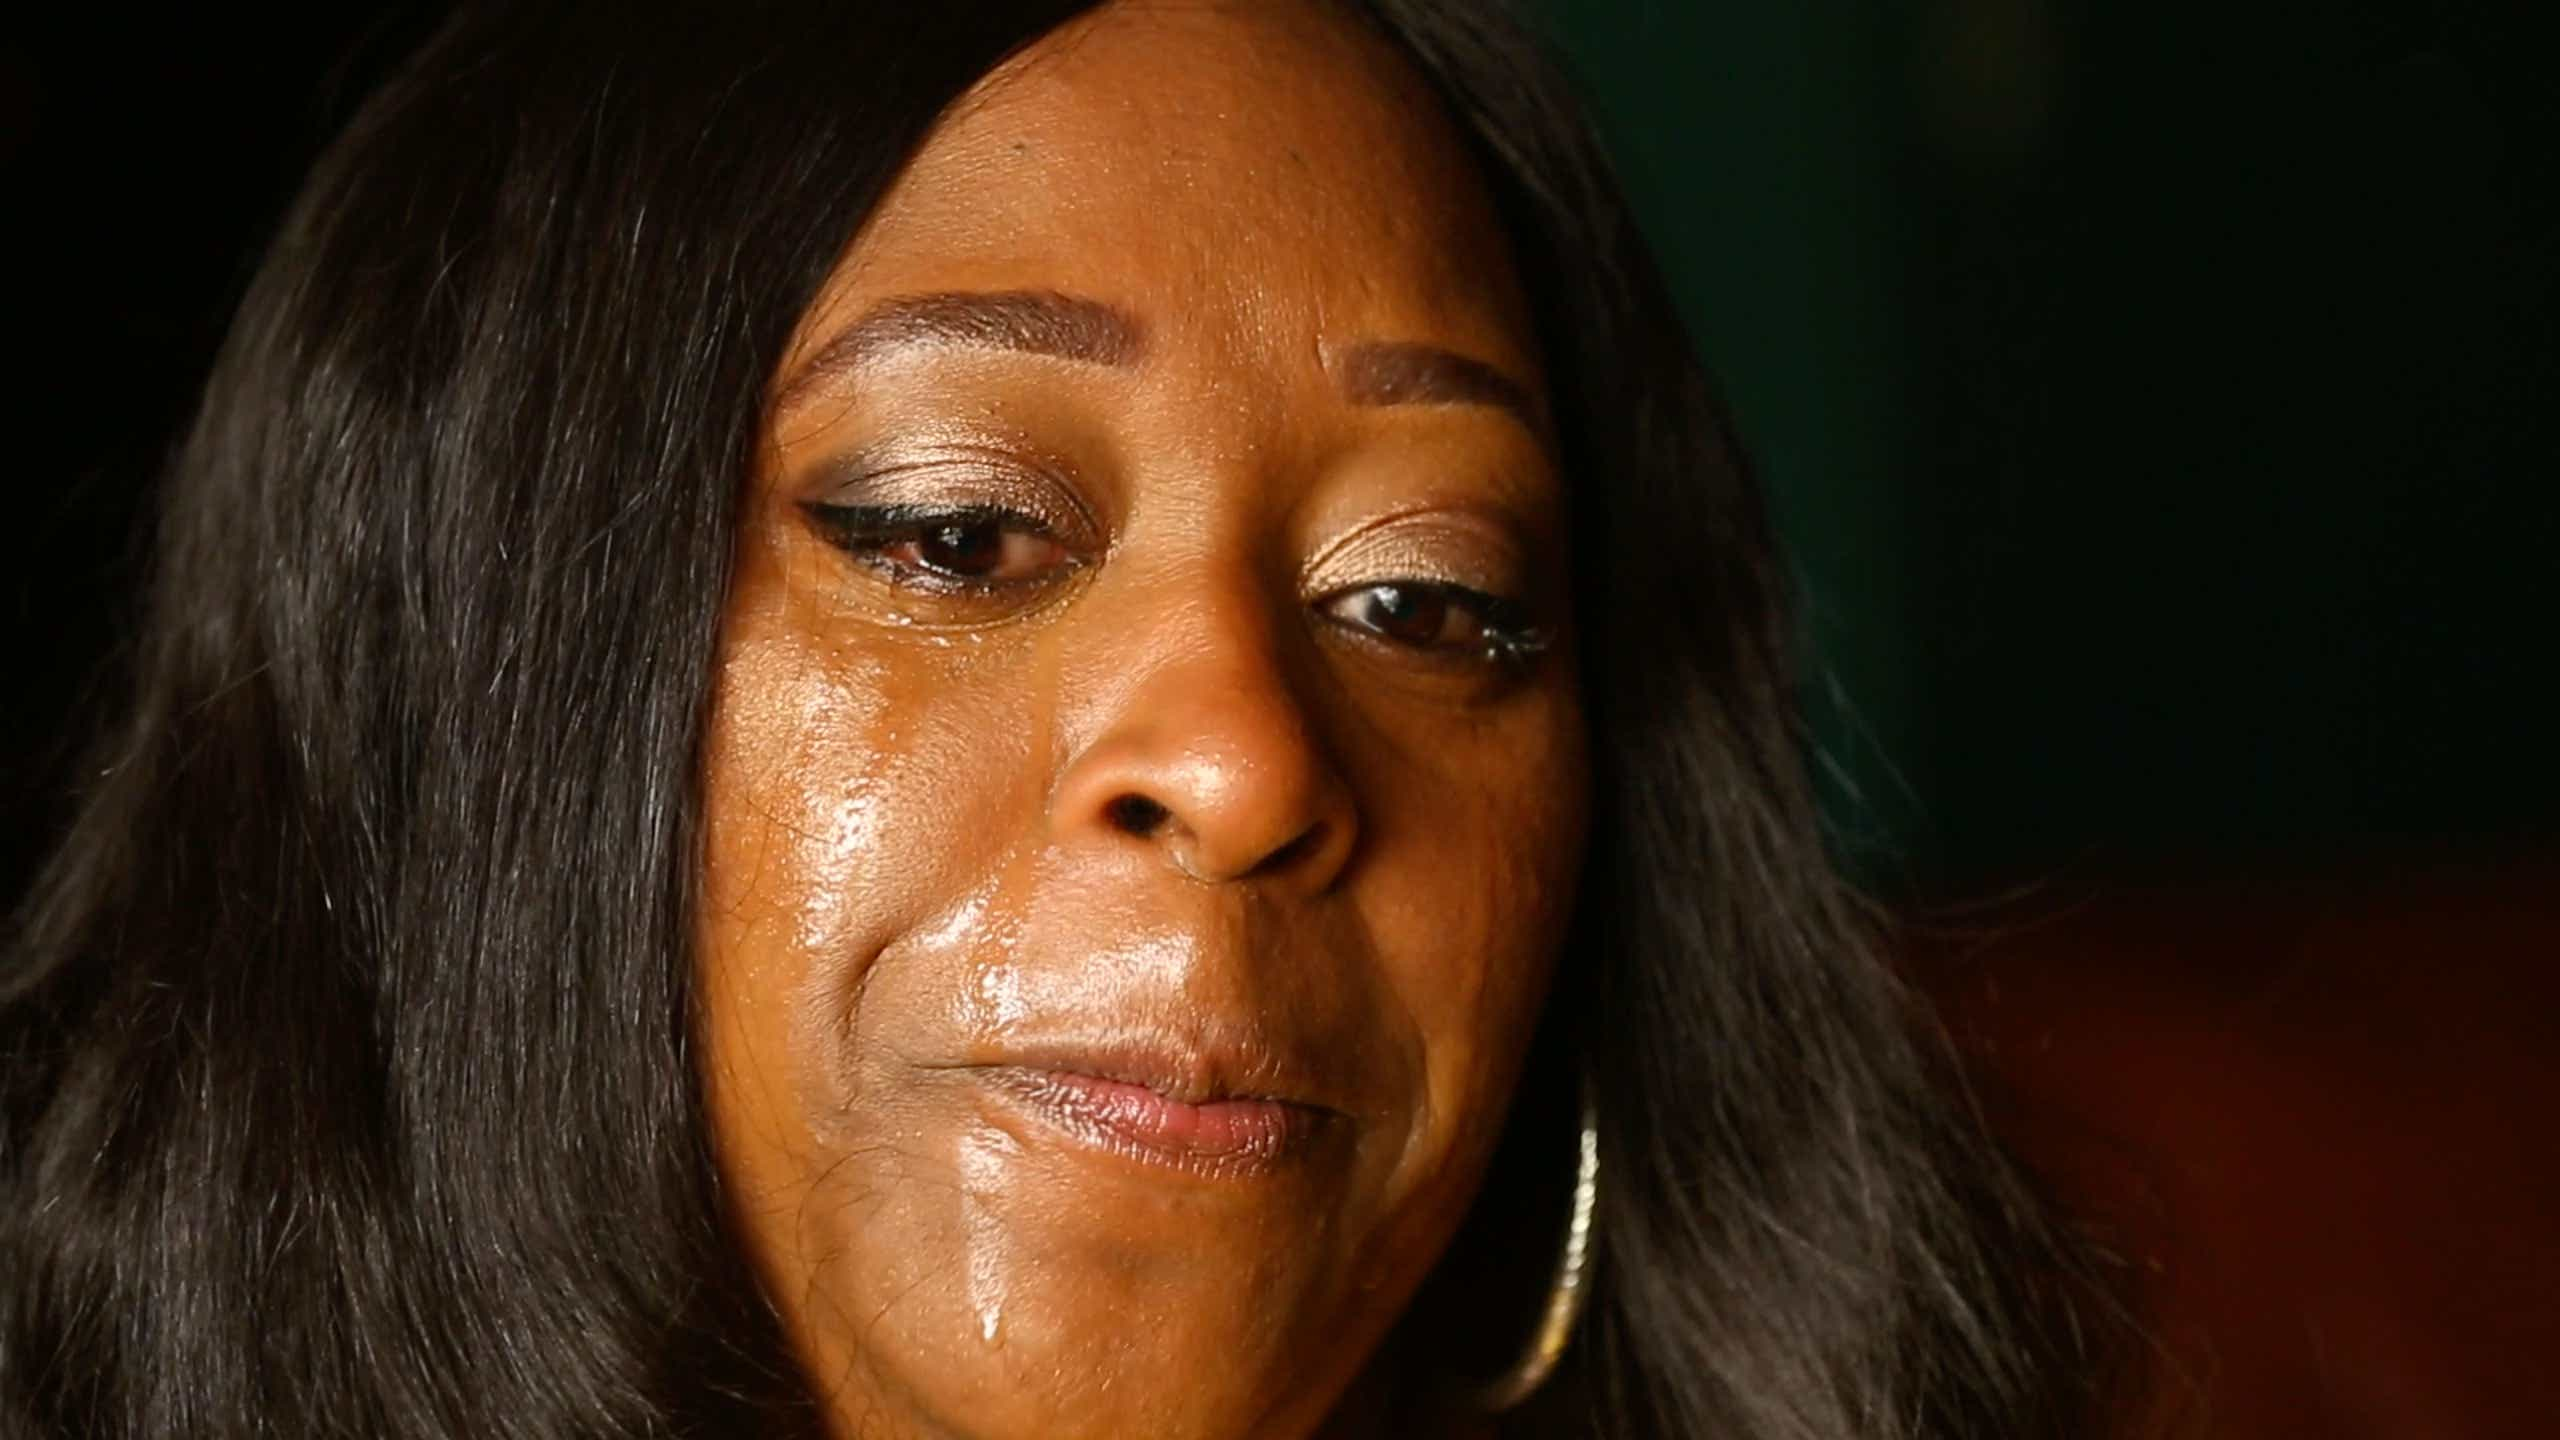 Friends, relatives left with tragedy after plastic surgeries lead to death